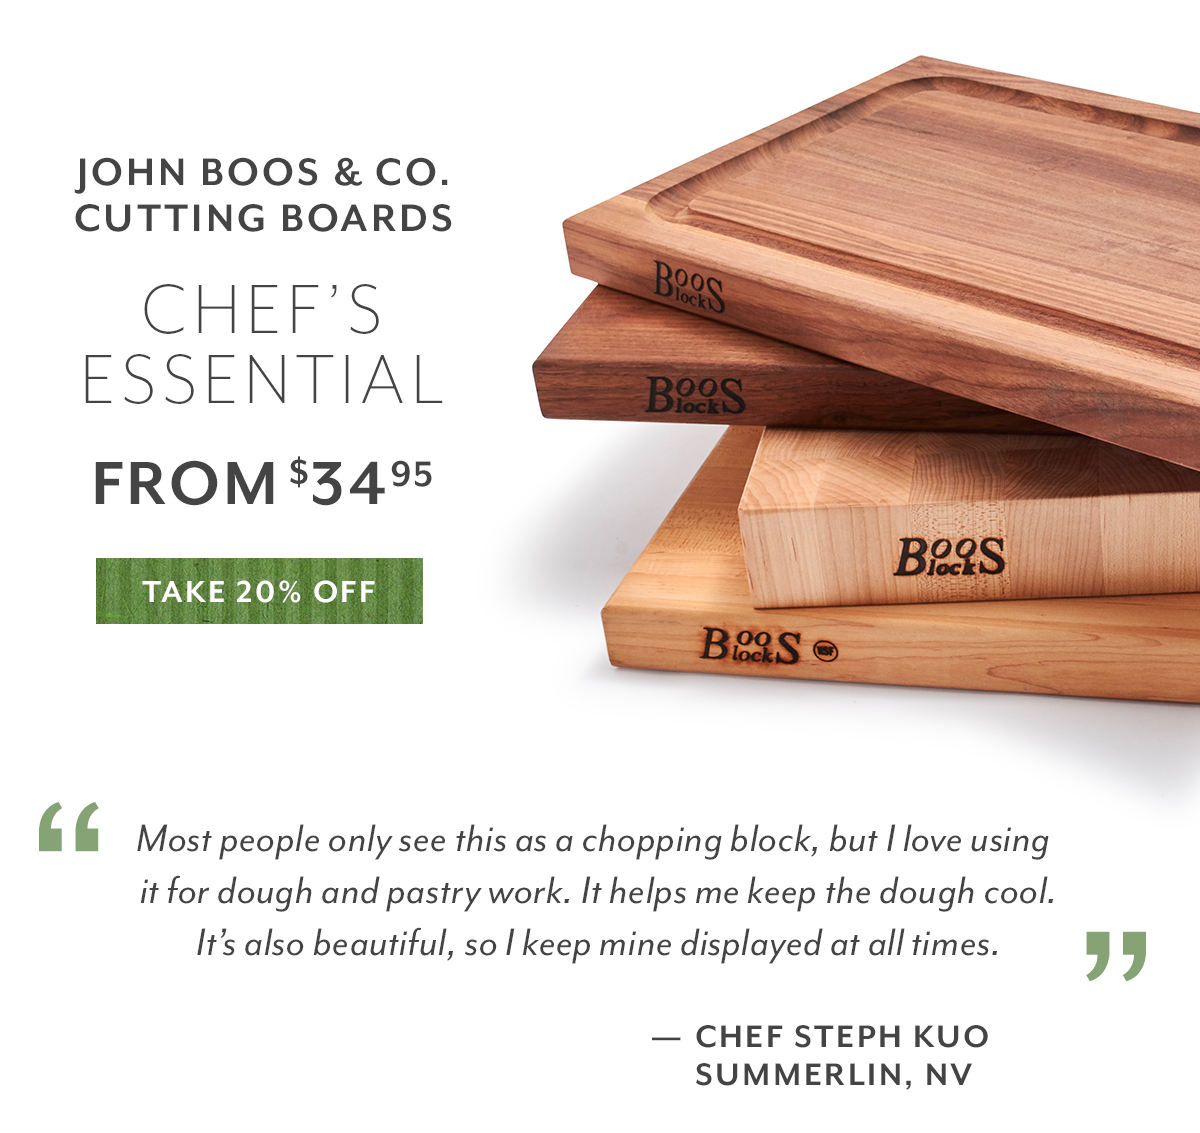 John Boos & Co. Cutting Boards